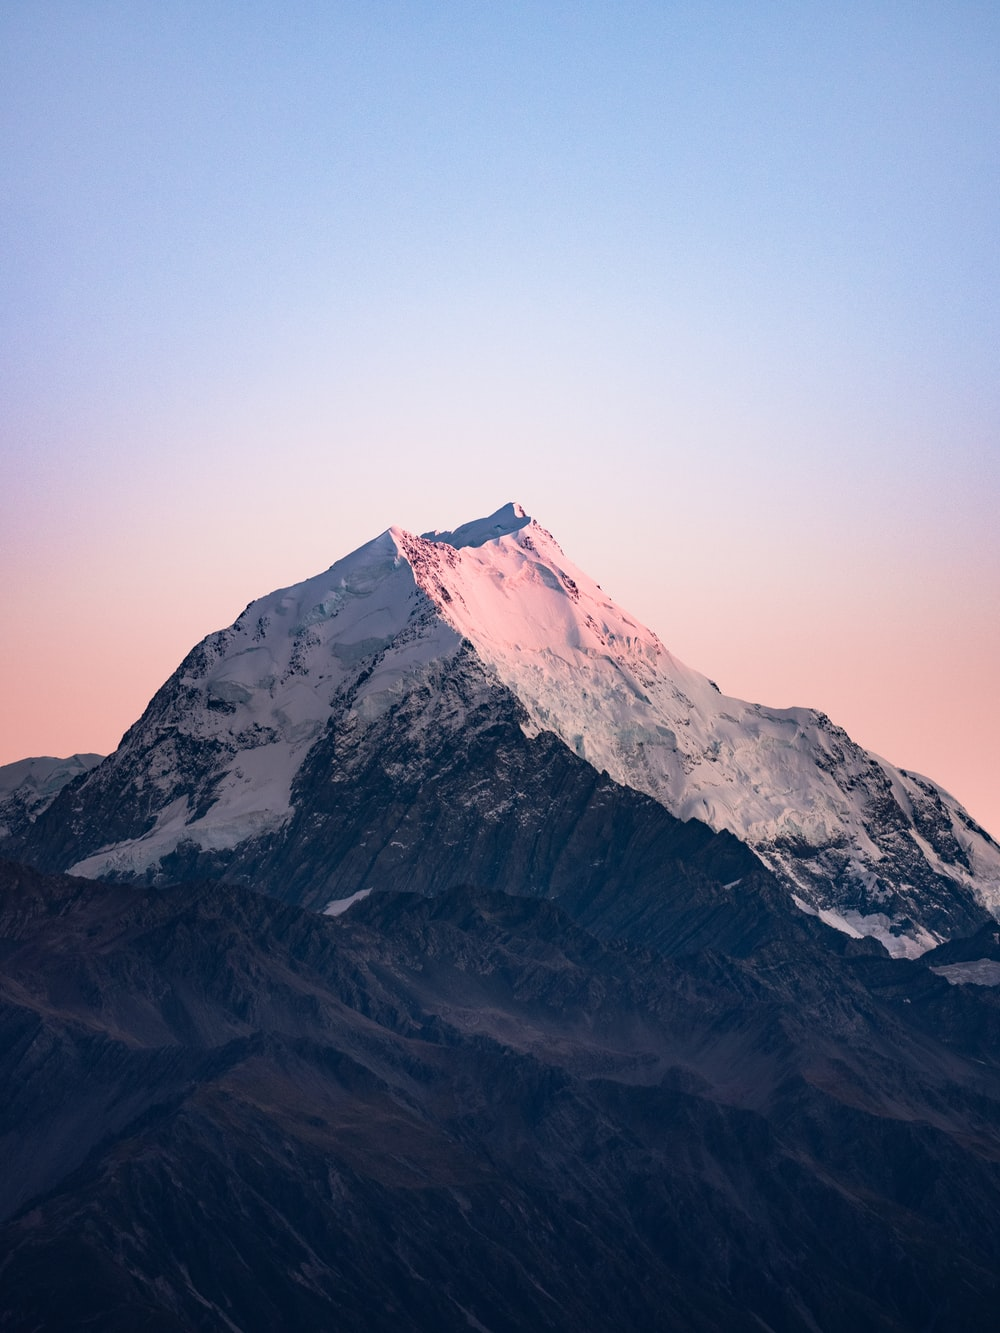 Mountain Wallpapers Free Hd Download 500 Hq Unsplash